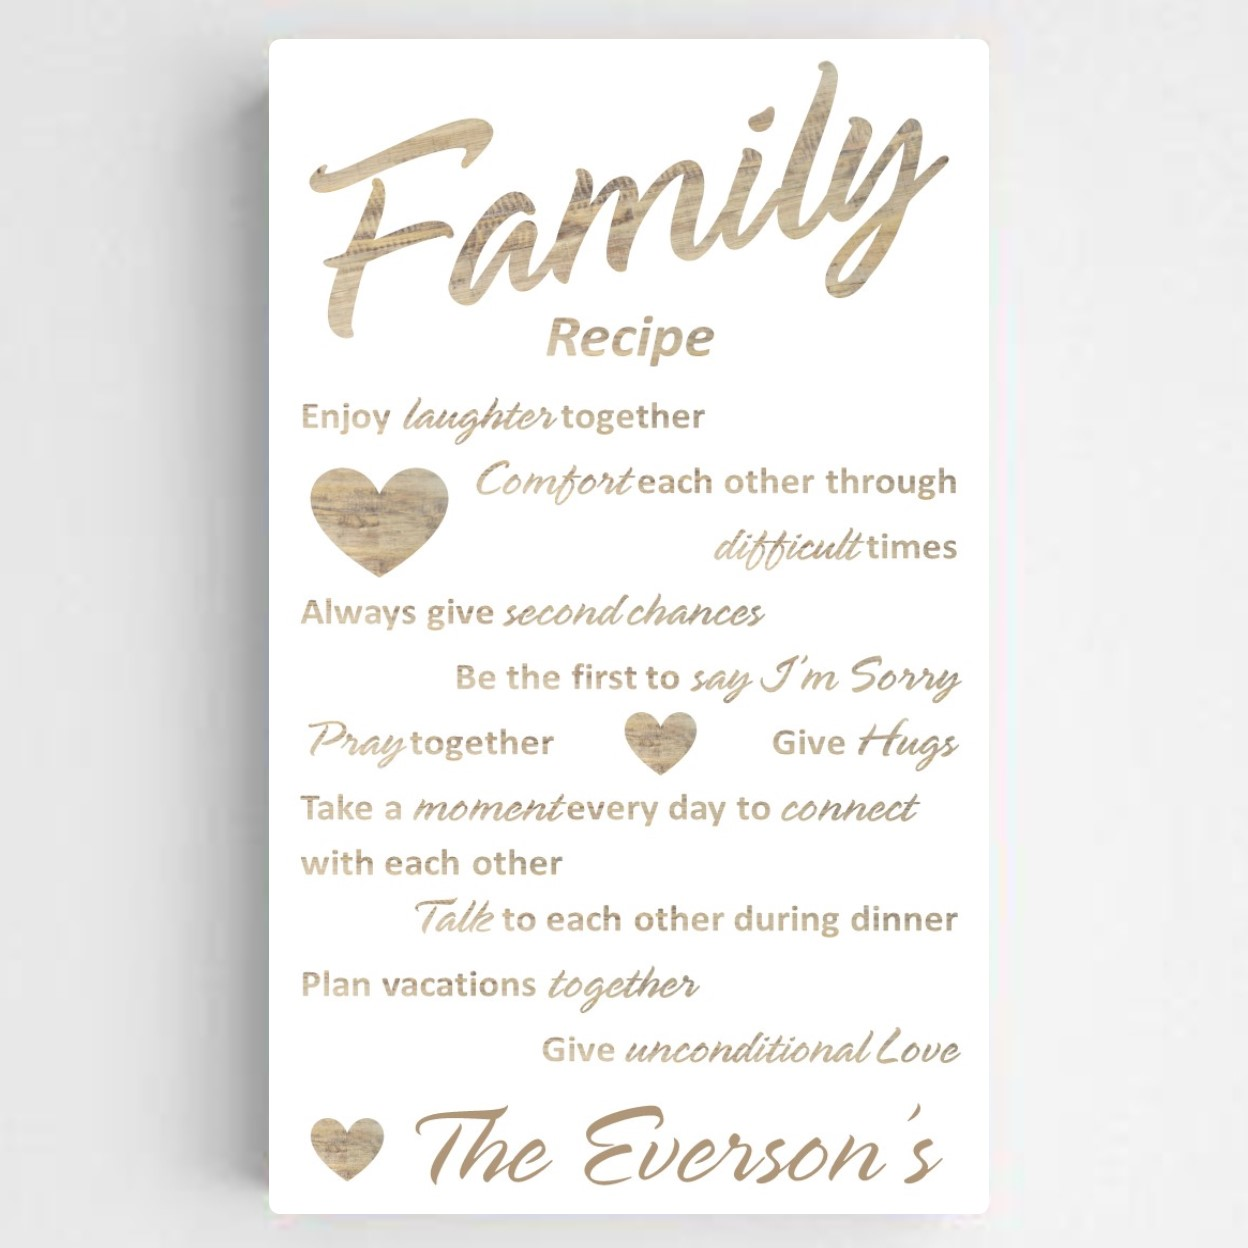 Ideas For 60th Wedding Anniversary Gifts For Parents : ... wedding anniversary gifts and party ideas for your parents that they